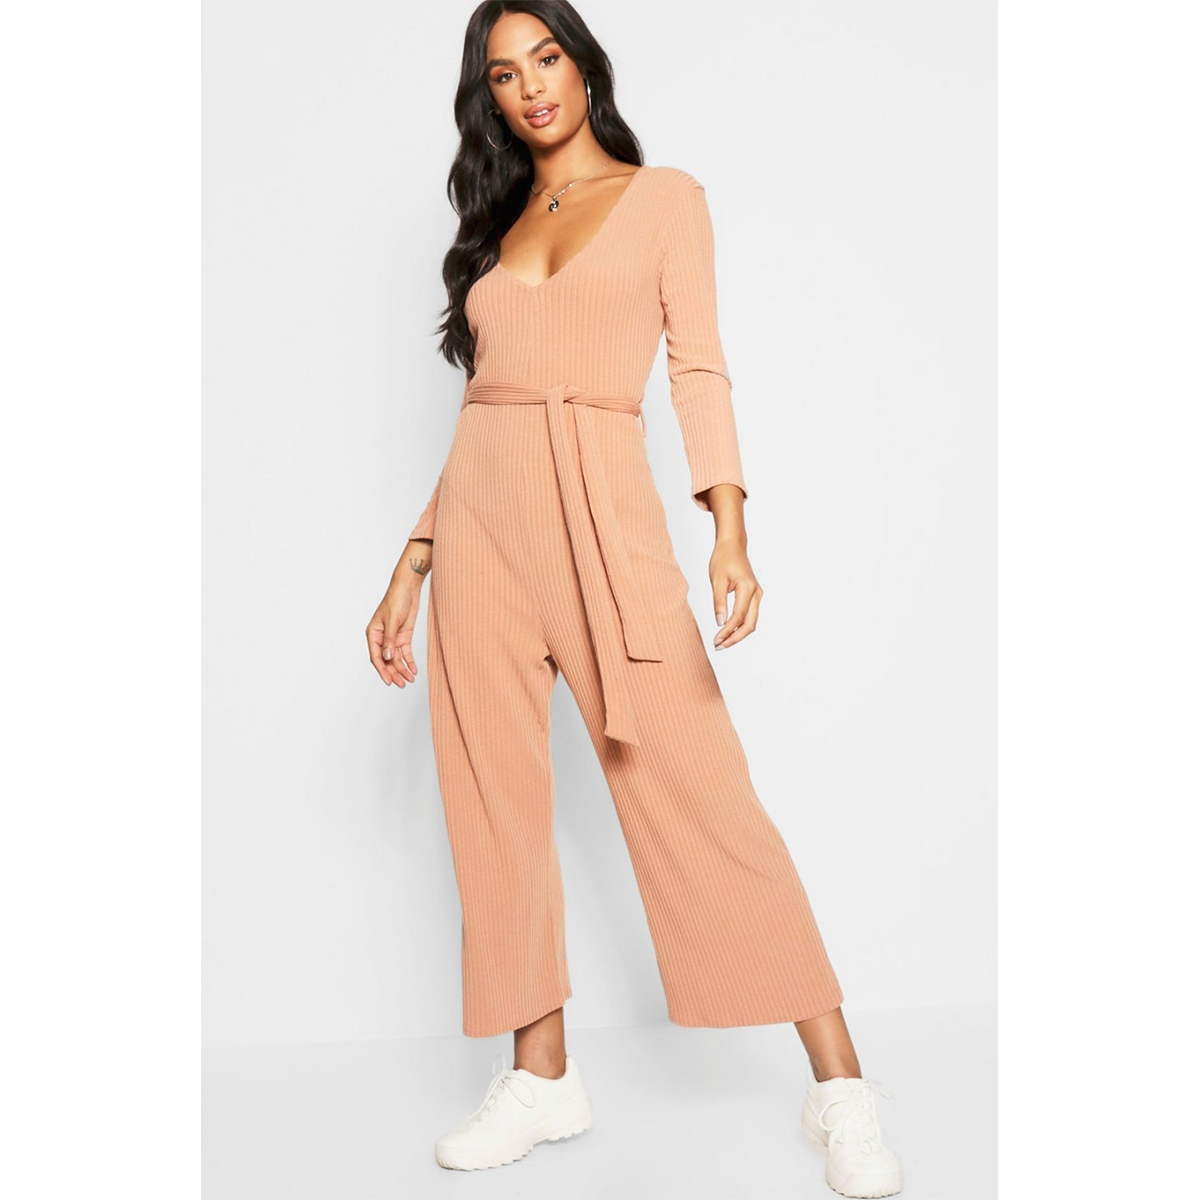 0bed1e91cf3 Boohoo Tall ¾ Sleeve Ribbed Culotte Jumpsuit